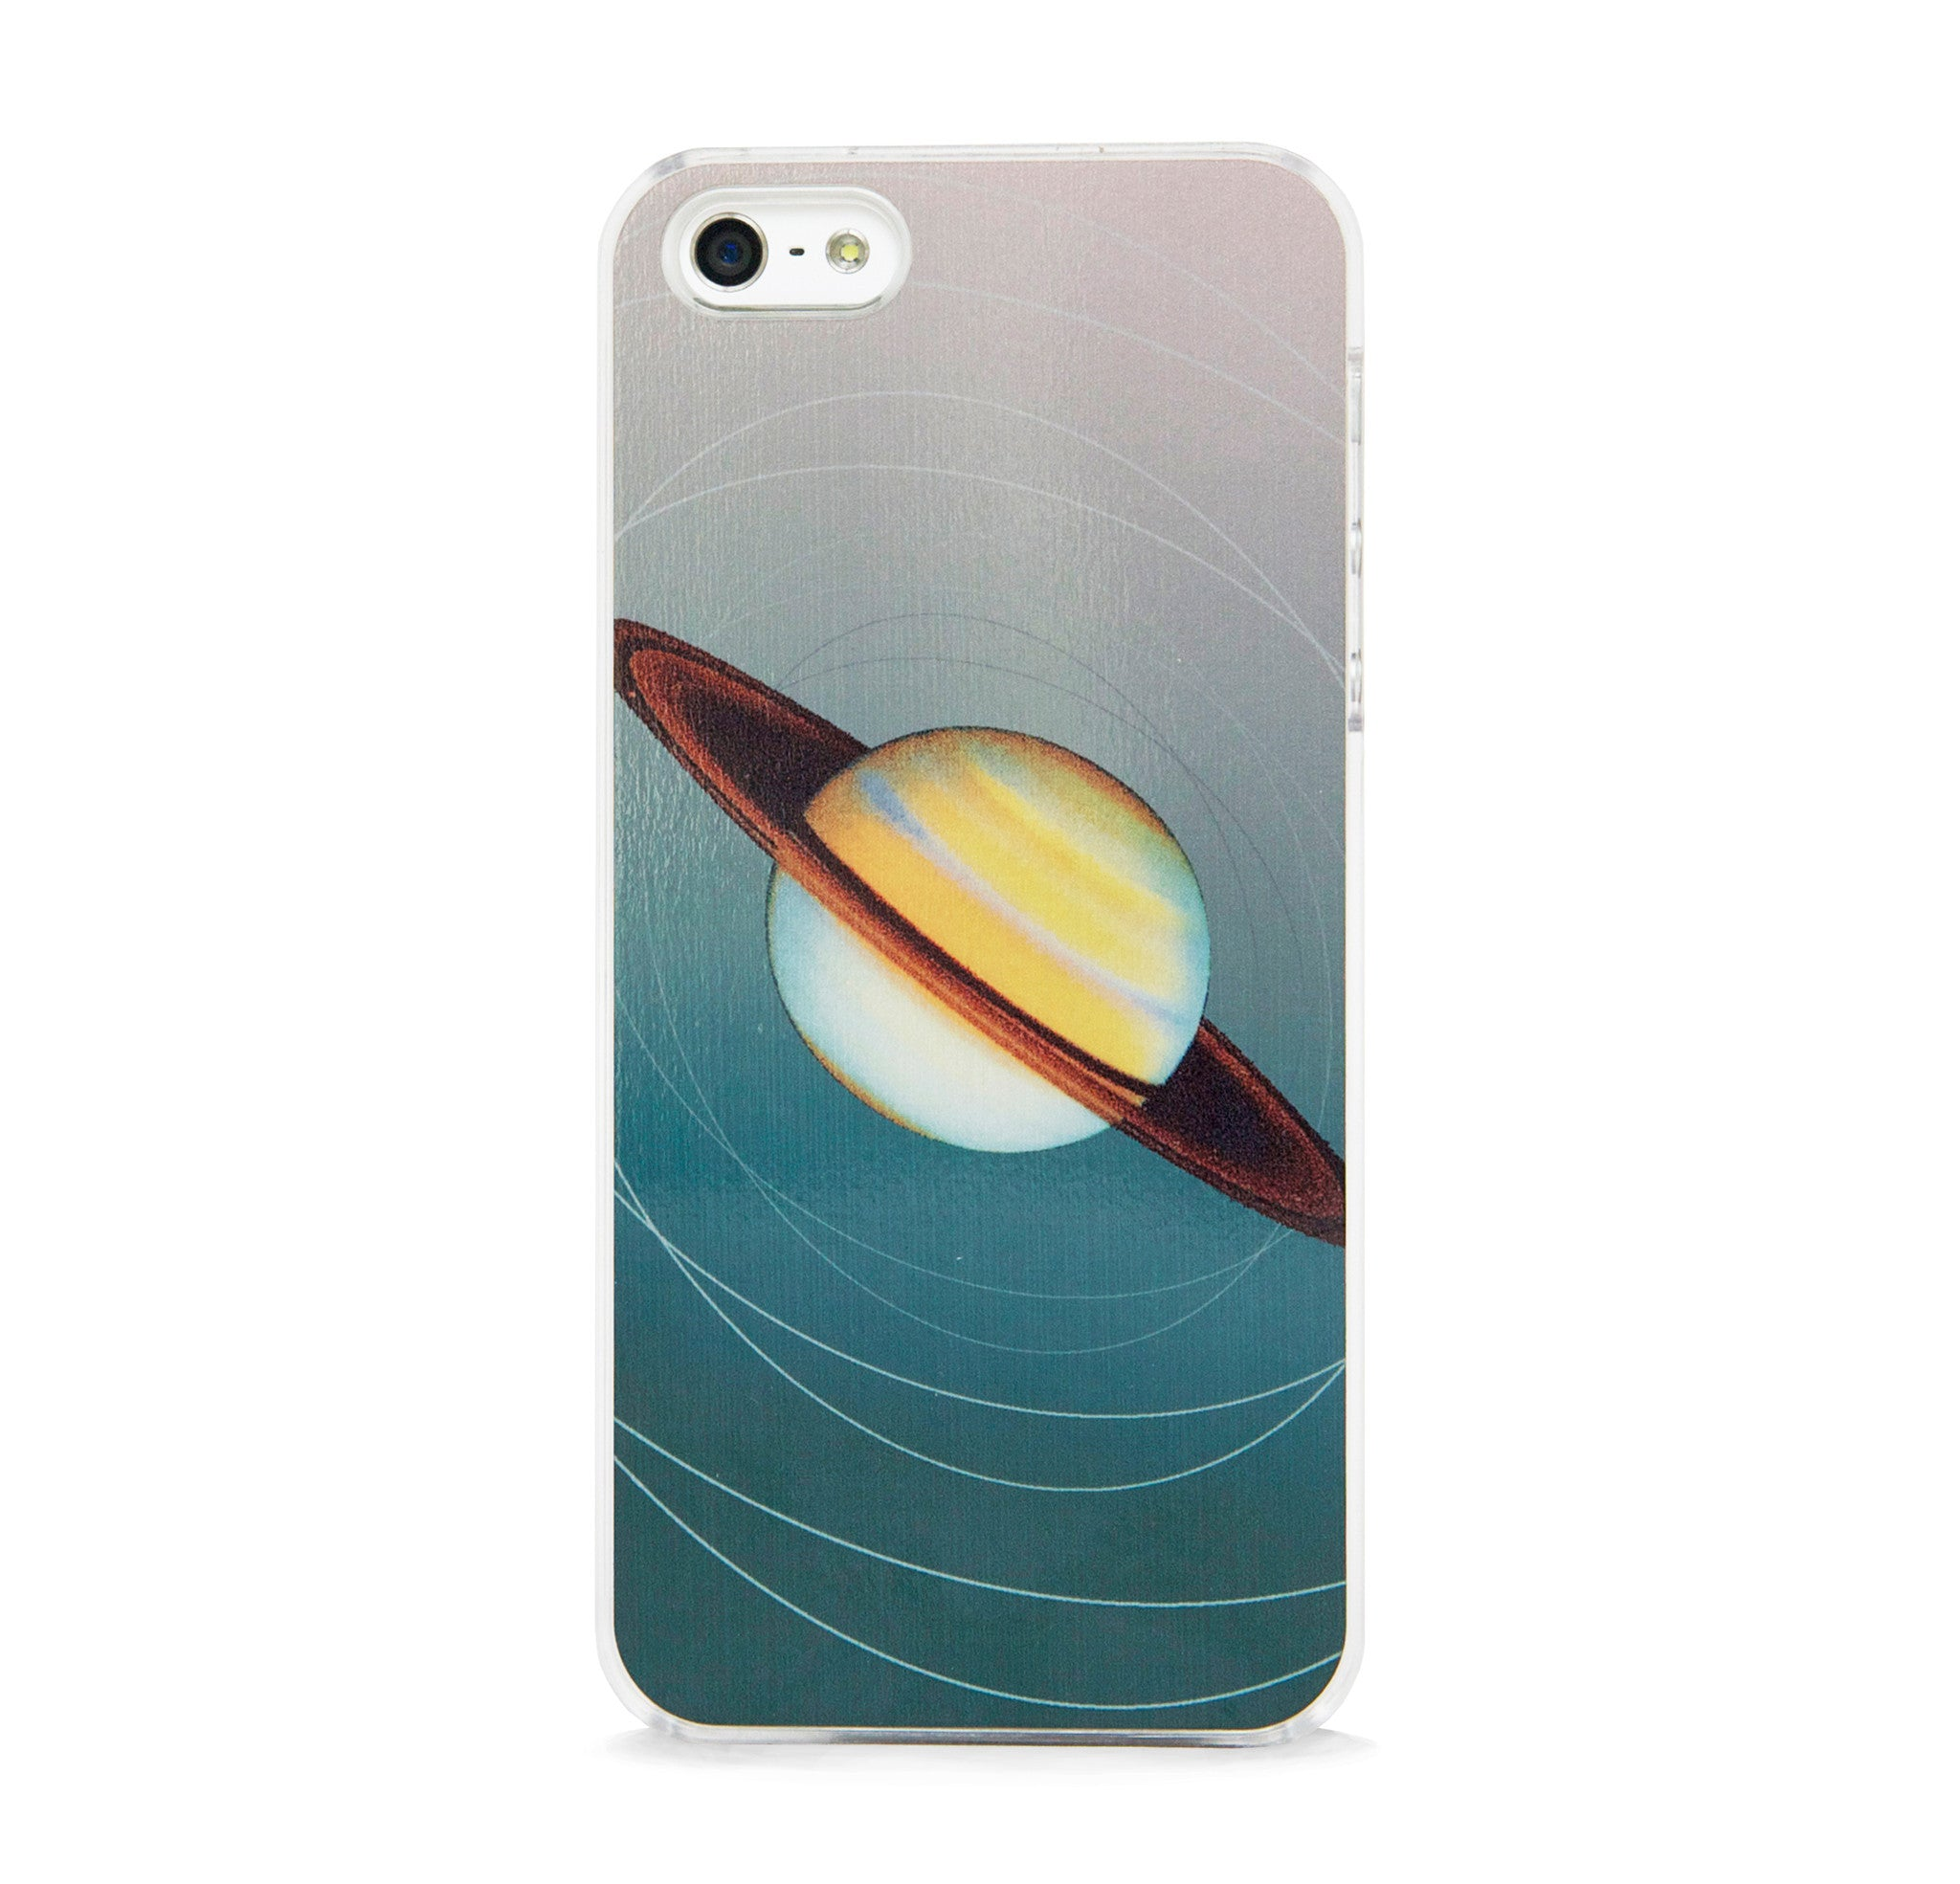 SPACE SATURN DK GREEN FOR IPHONE 5/5S, IPHONE SE